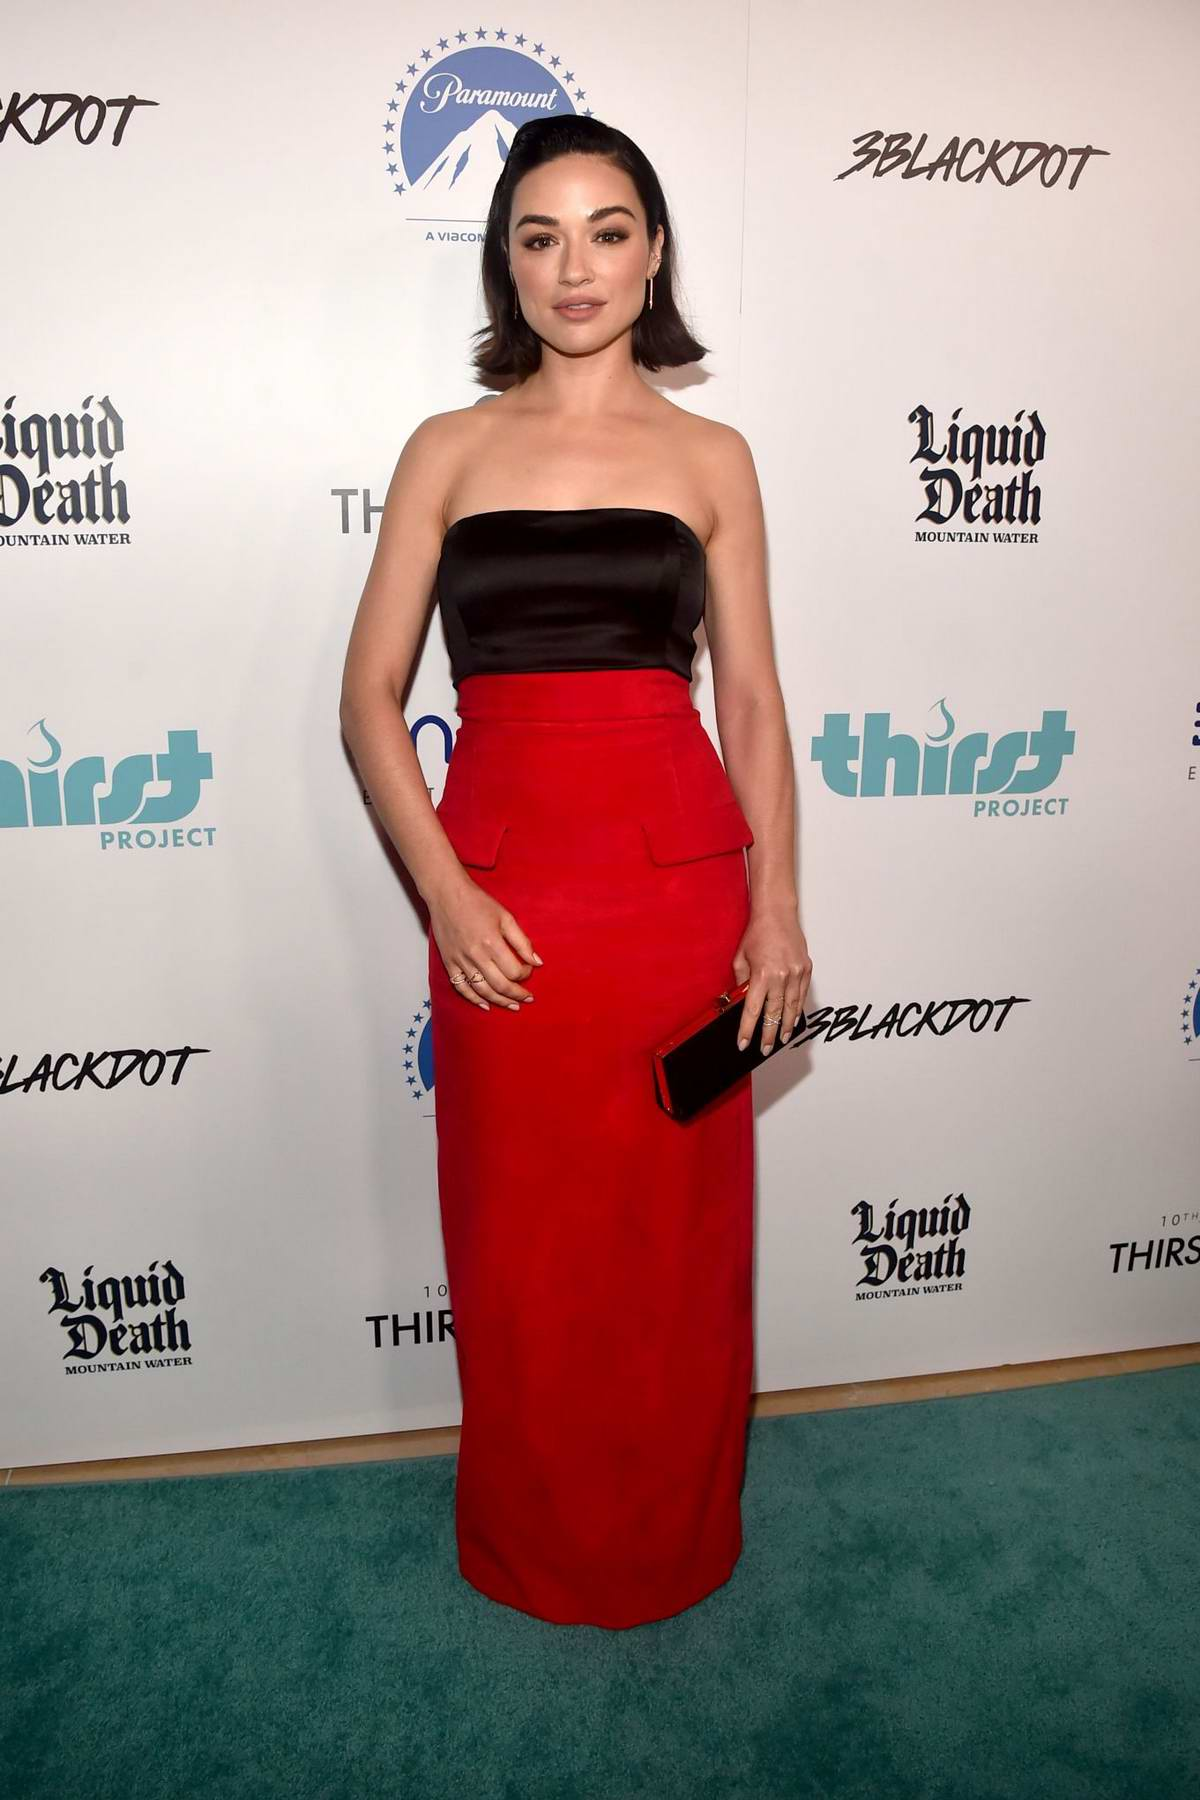 Crystal Reed attends the Thirst Project 10th Annual Thirst Gala at The Beverly Hilton Hotel in Beverly Hills, Los Angeles